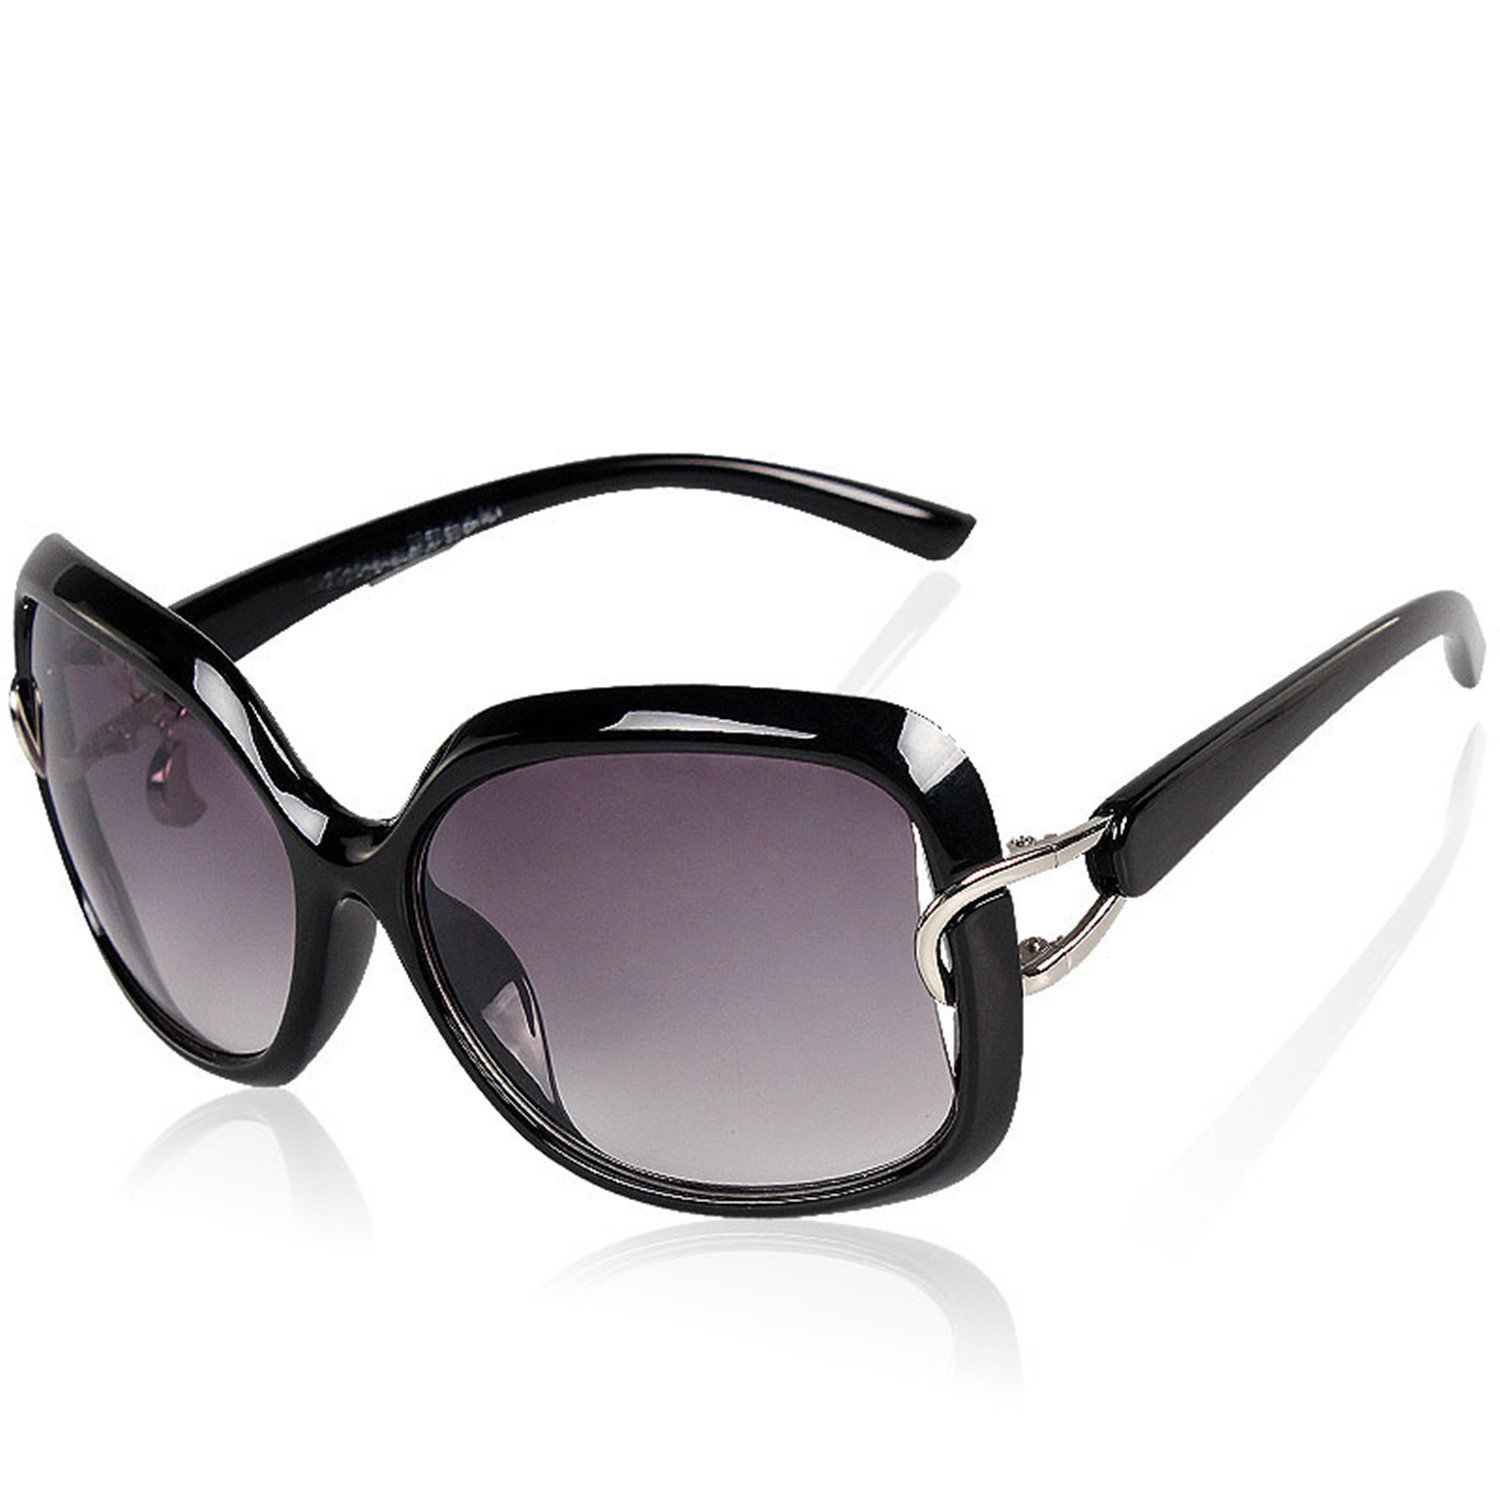 Amazon.com: Surprising Day NEW Women New StyleProtection ...